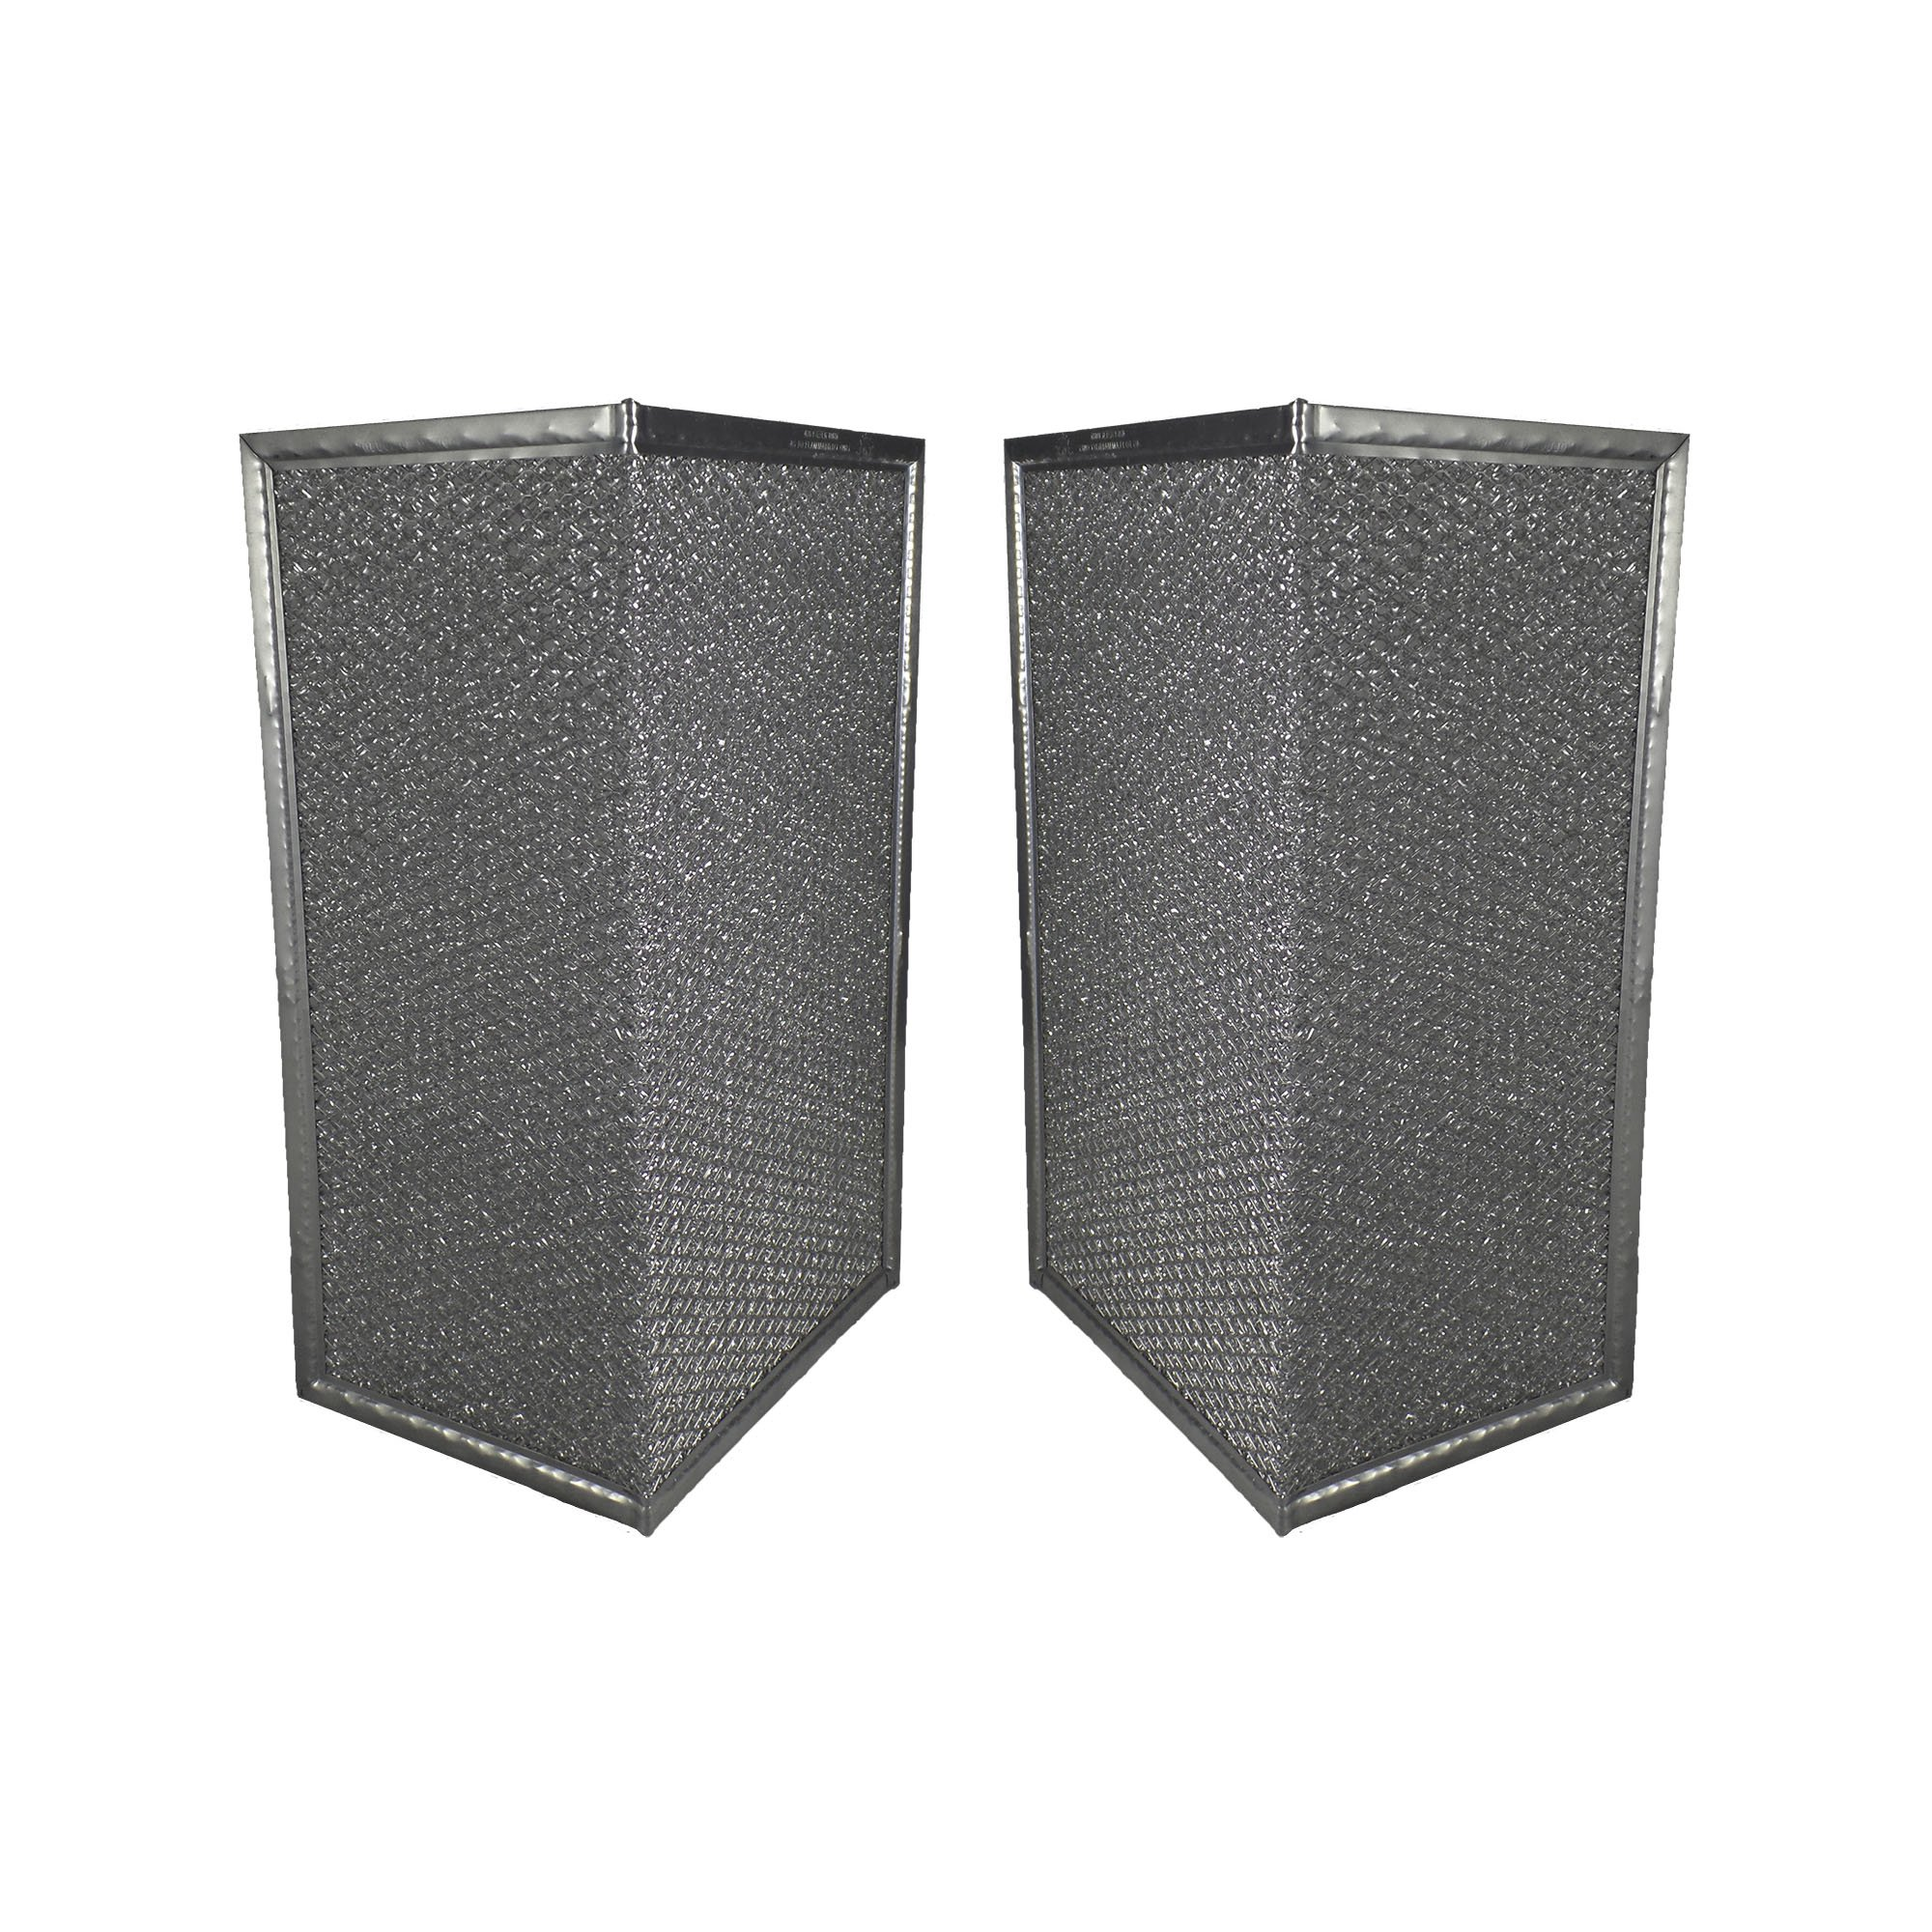 2 PACK Air Filter Factory Compatible Replacement For Broan SR610080, 610080 Aluminum Mesh Grease Filter